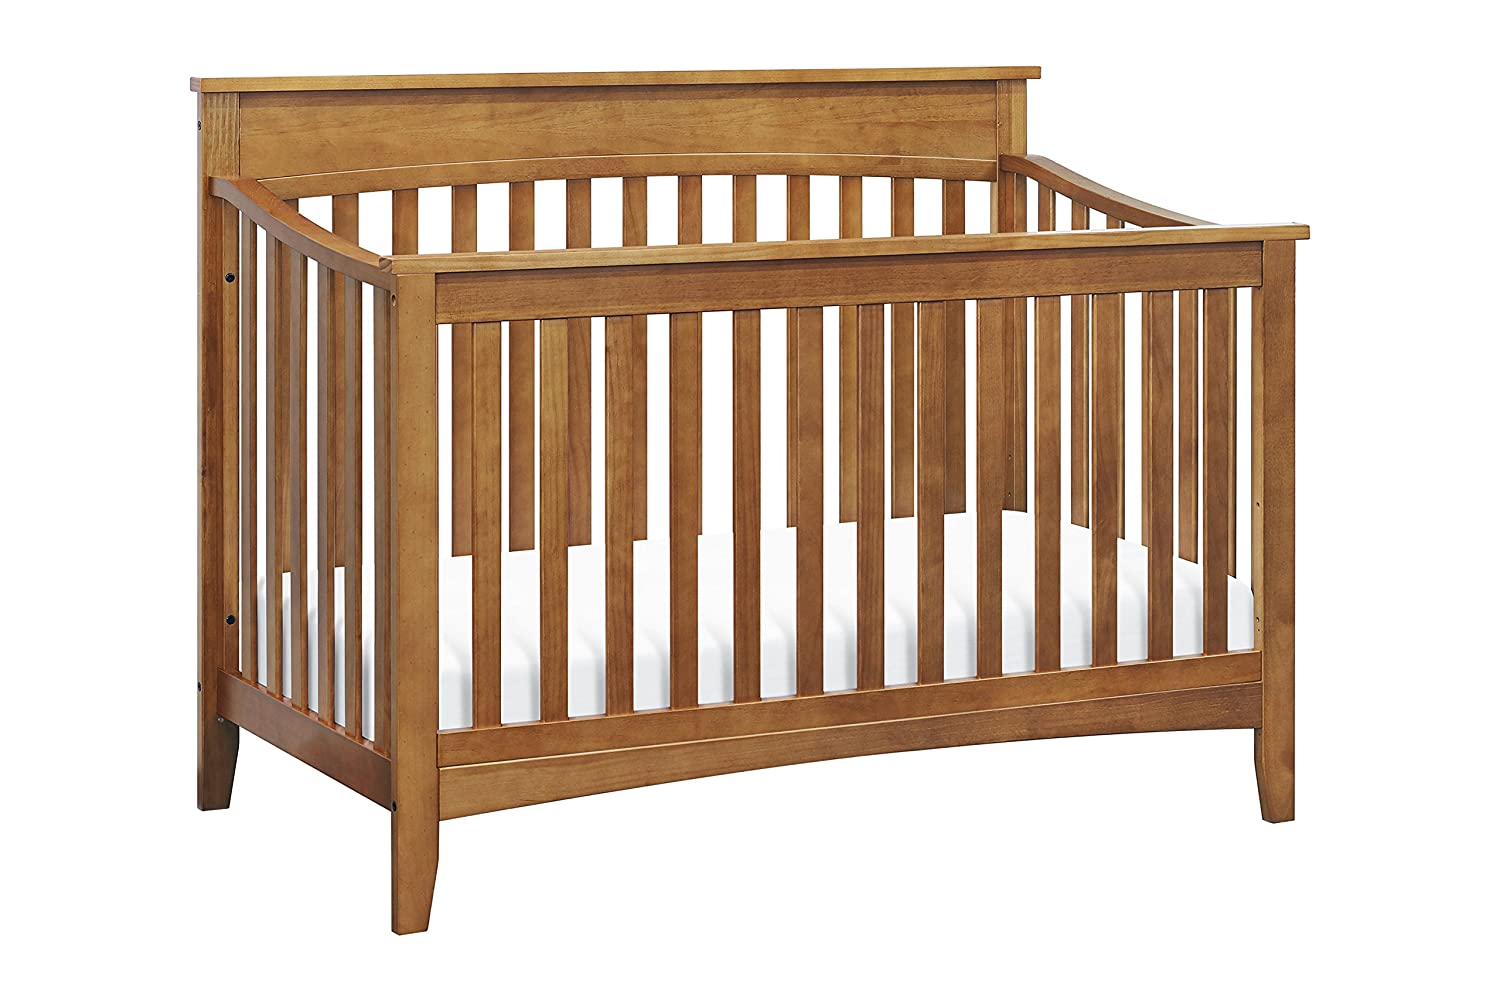 Da Vinci Grove 4 In 1 Convertible Crib In Chesnut Finish by Da Vinci